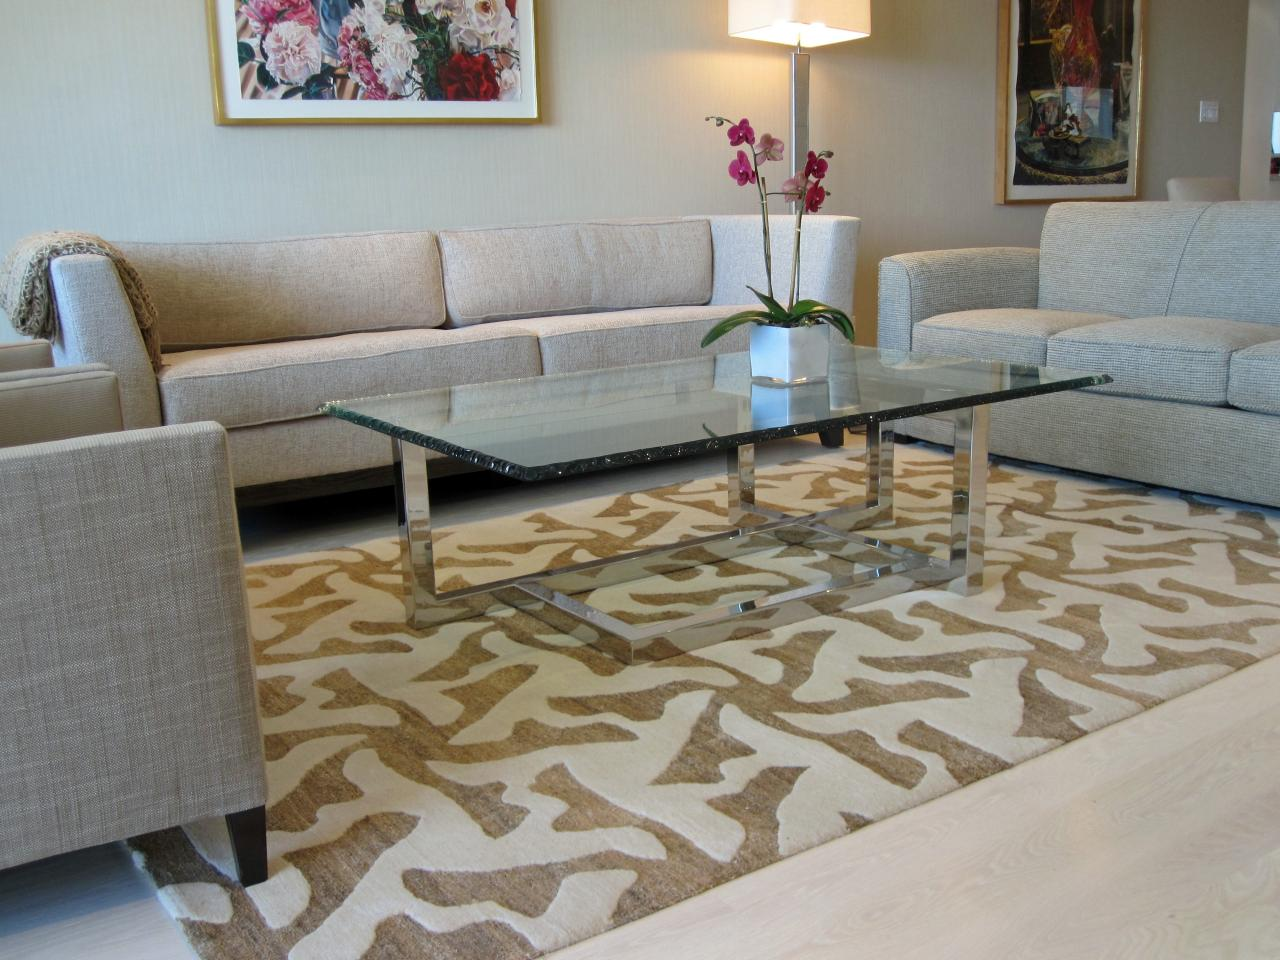 Choosing The Best Area Rug For Your Space